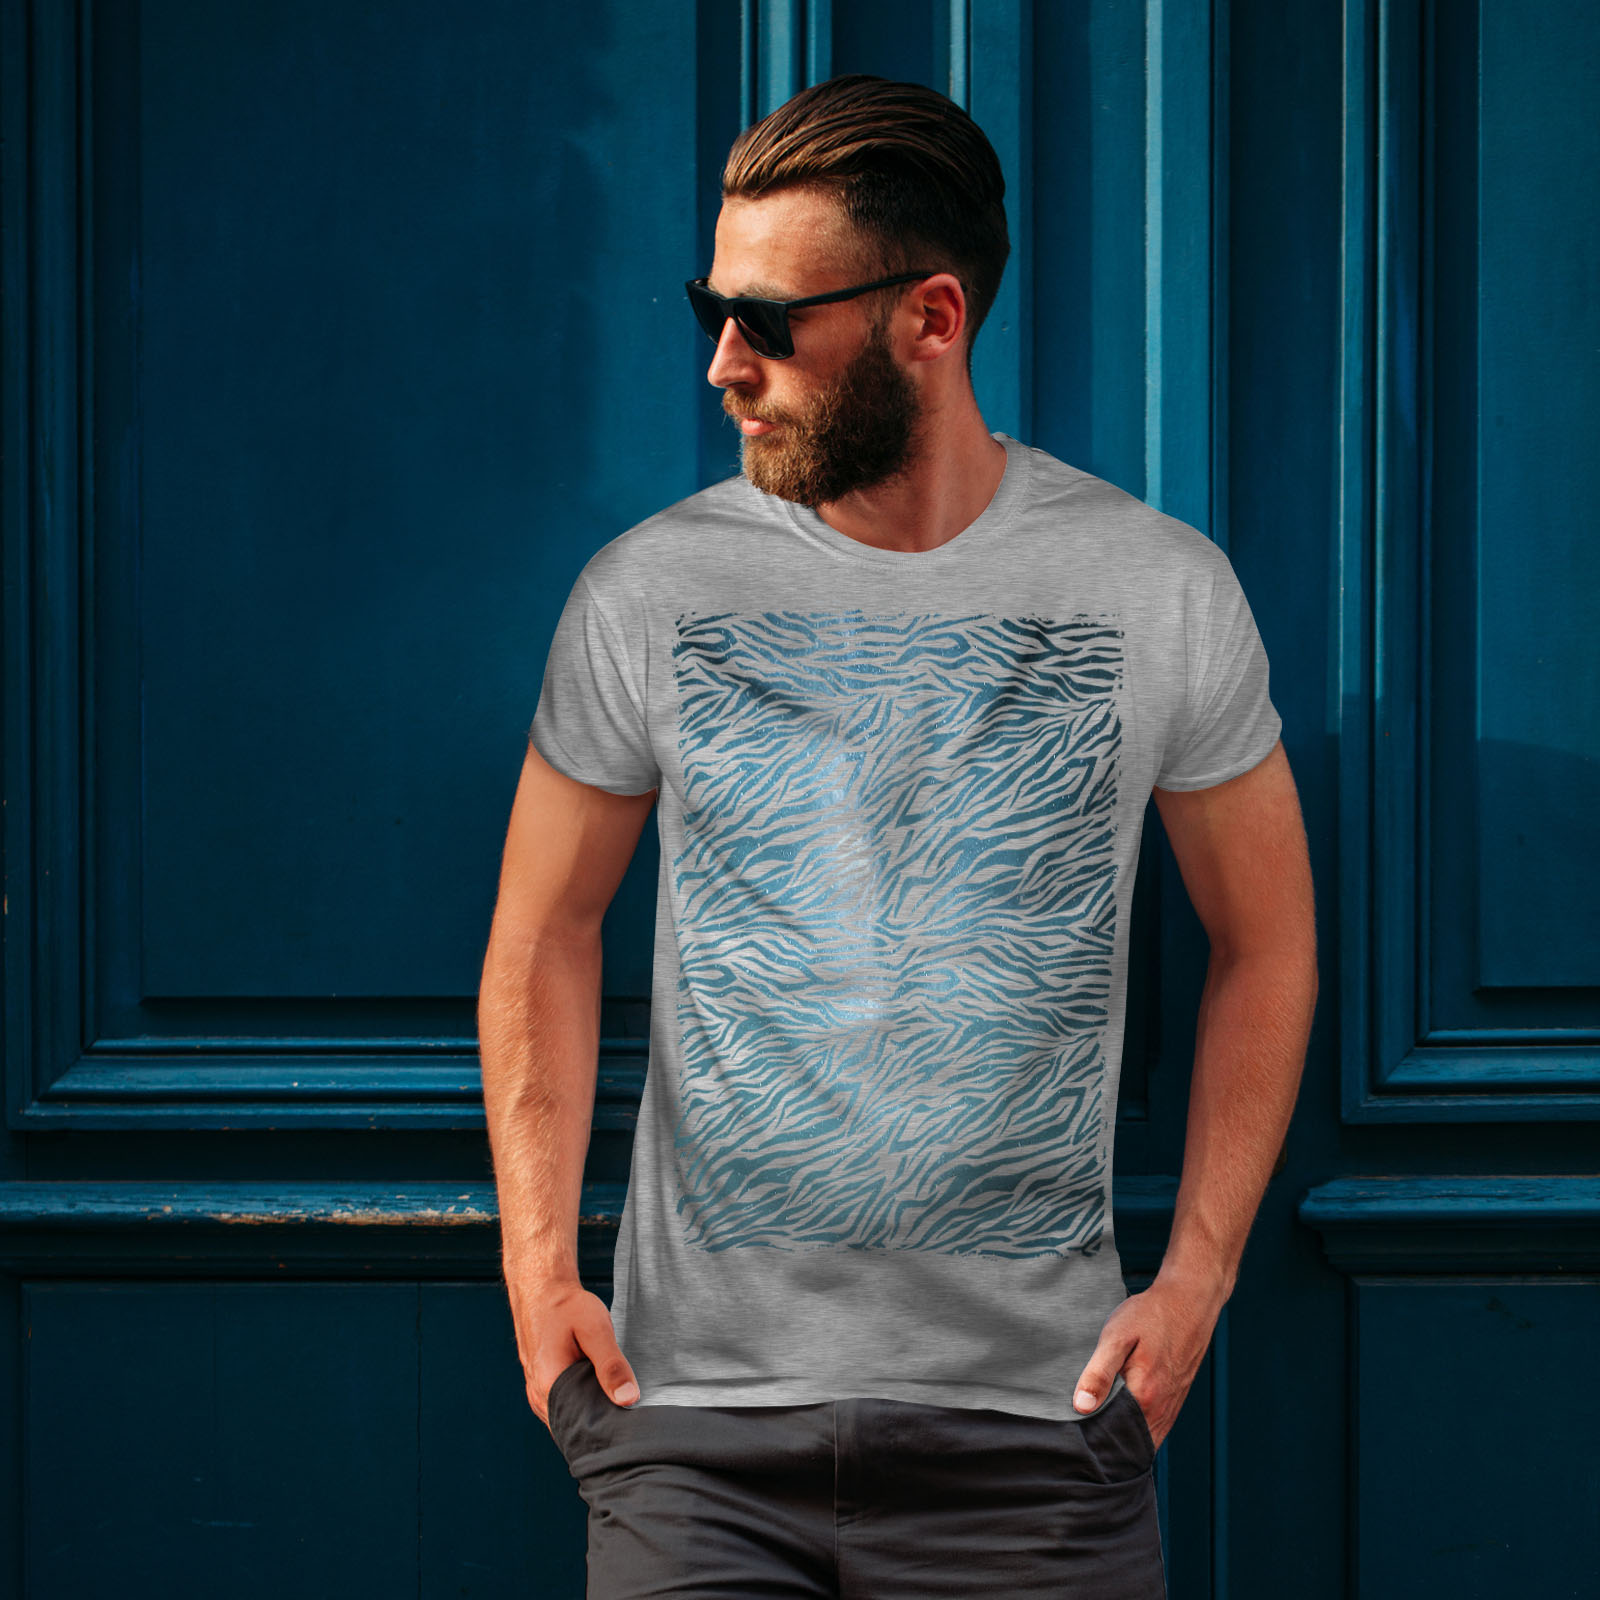 Wellcoda-Fashion-Pattern-Mens-T-shirt-Animal-Graphic-Design-Printed-Tee miniatuur 16